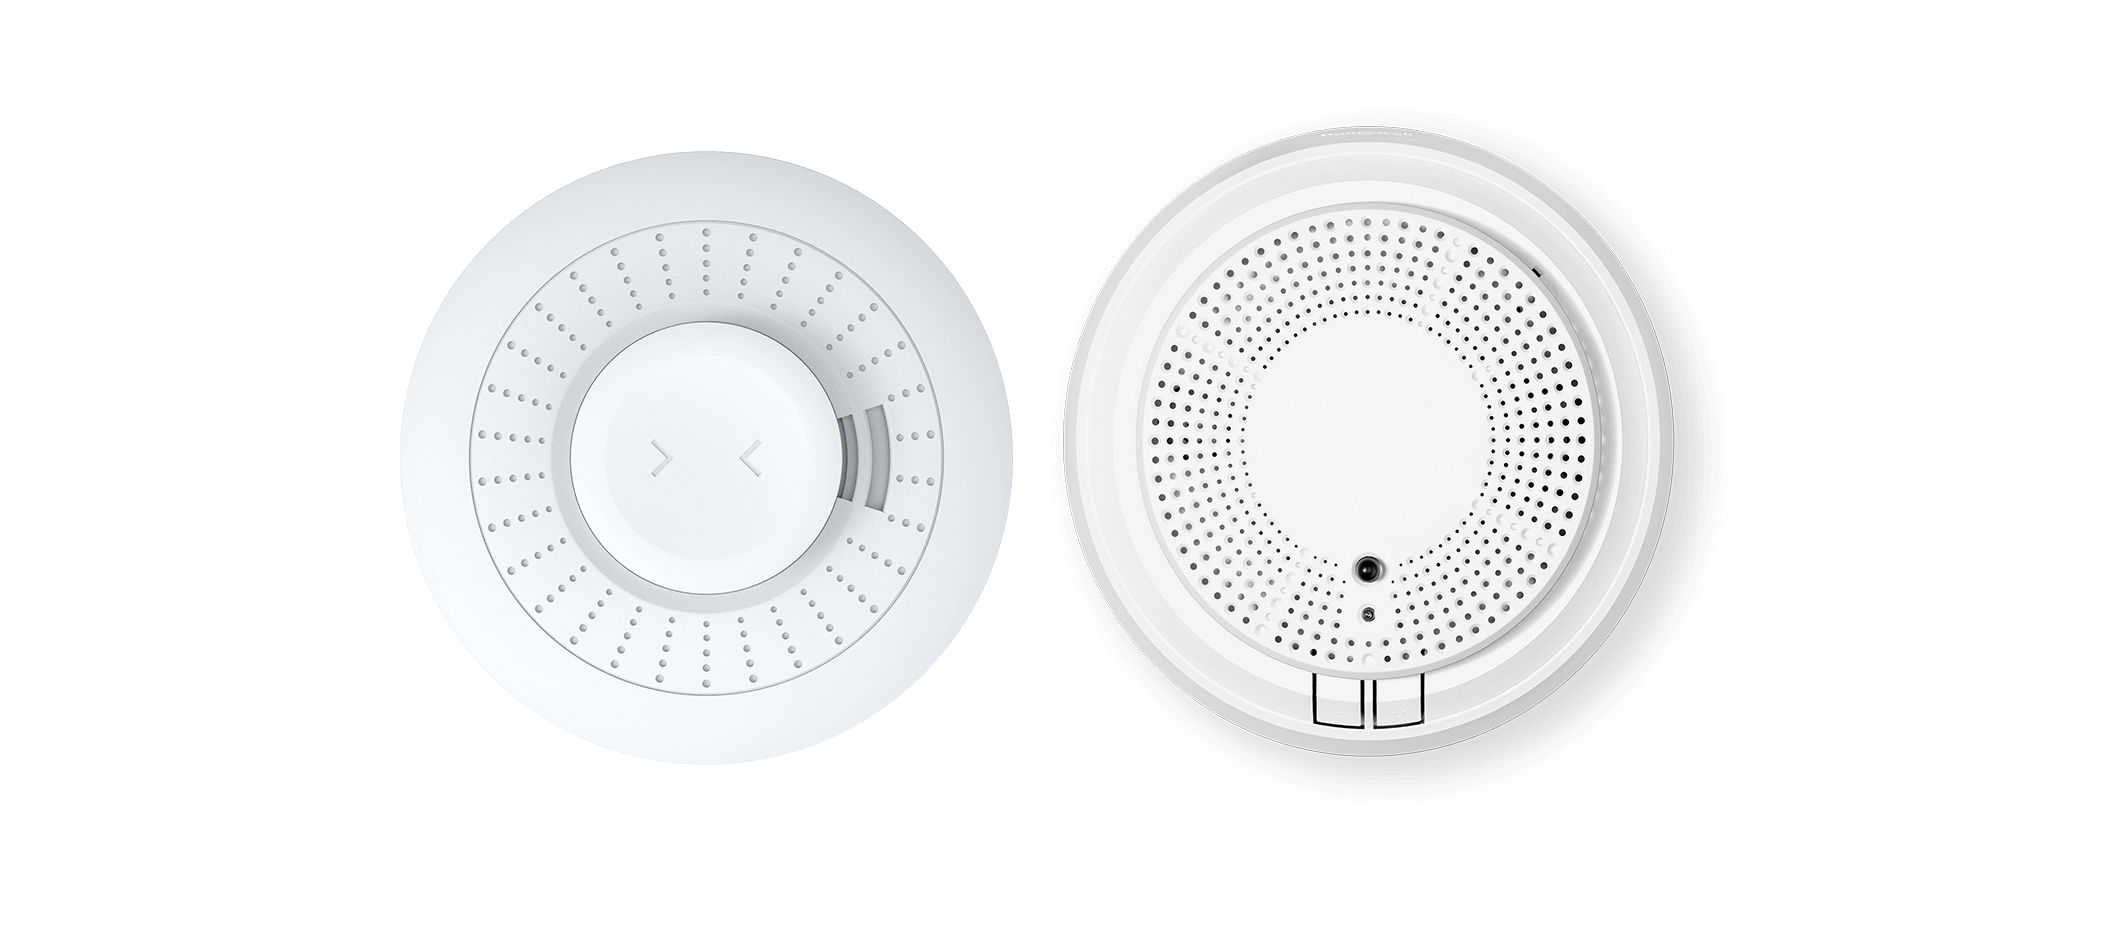 Home fire detection systems